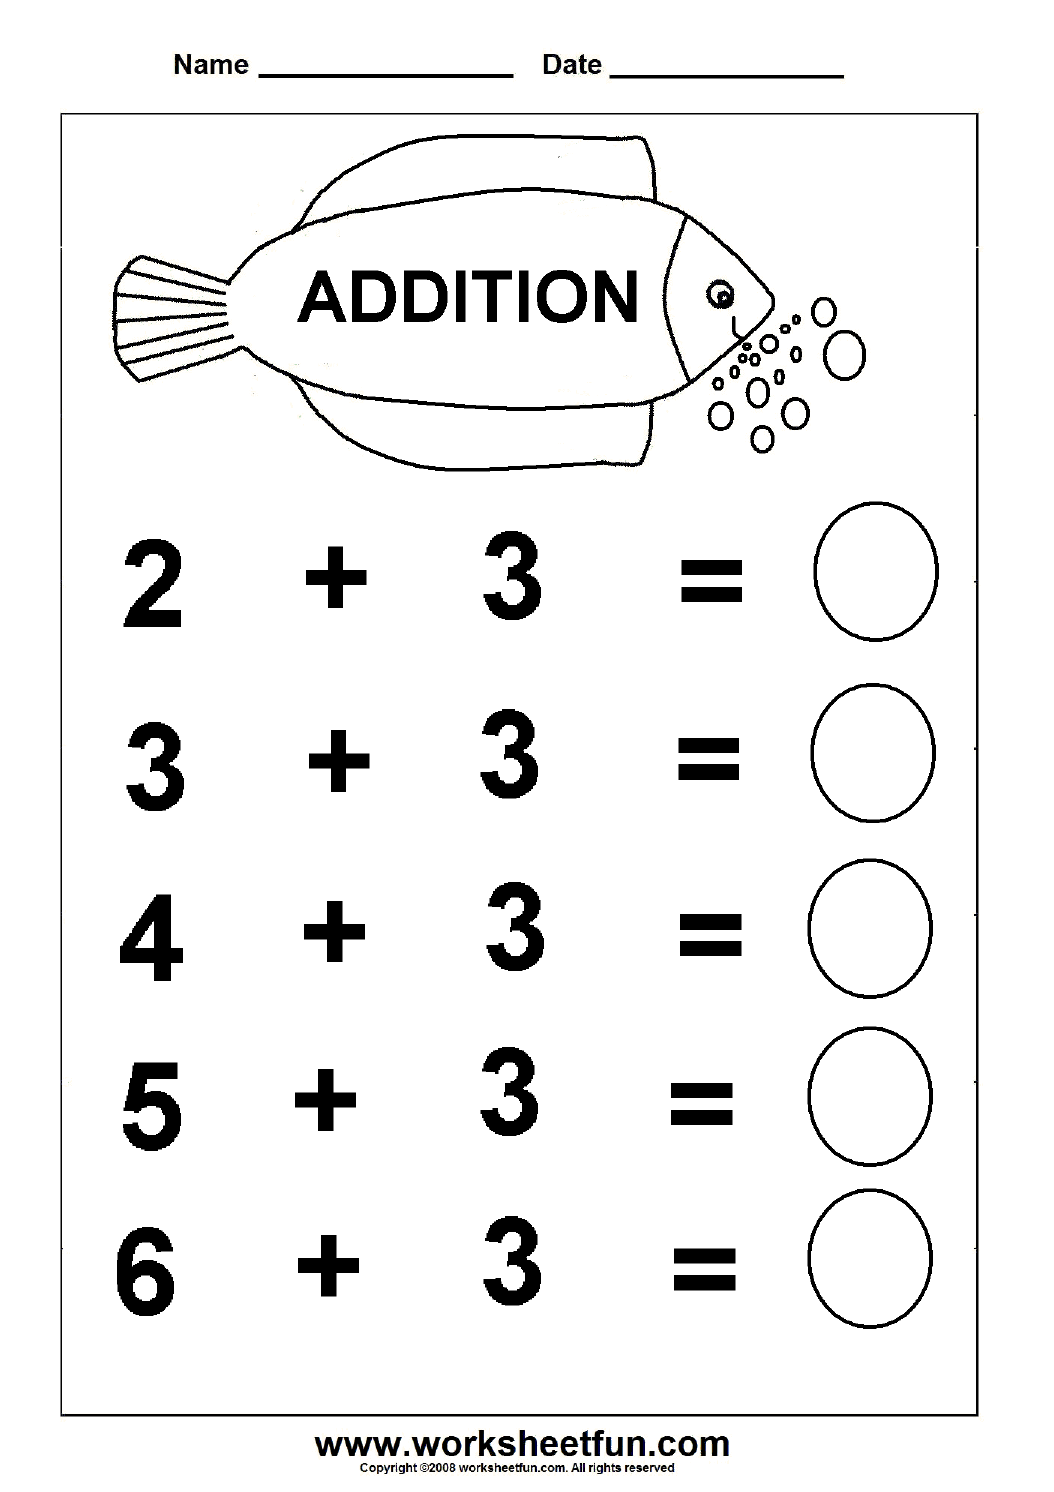 Worksheets Adding Worksheets beginner addition 6 kindergarten worksheets free first grade worksheets